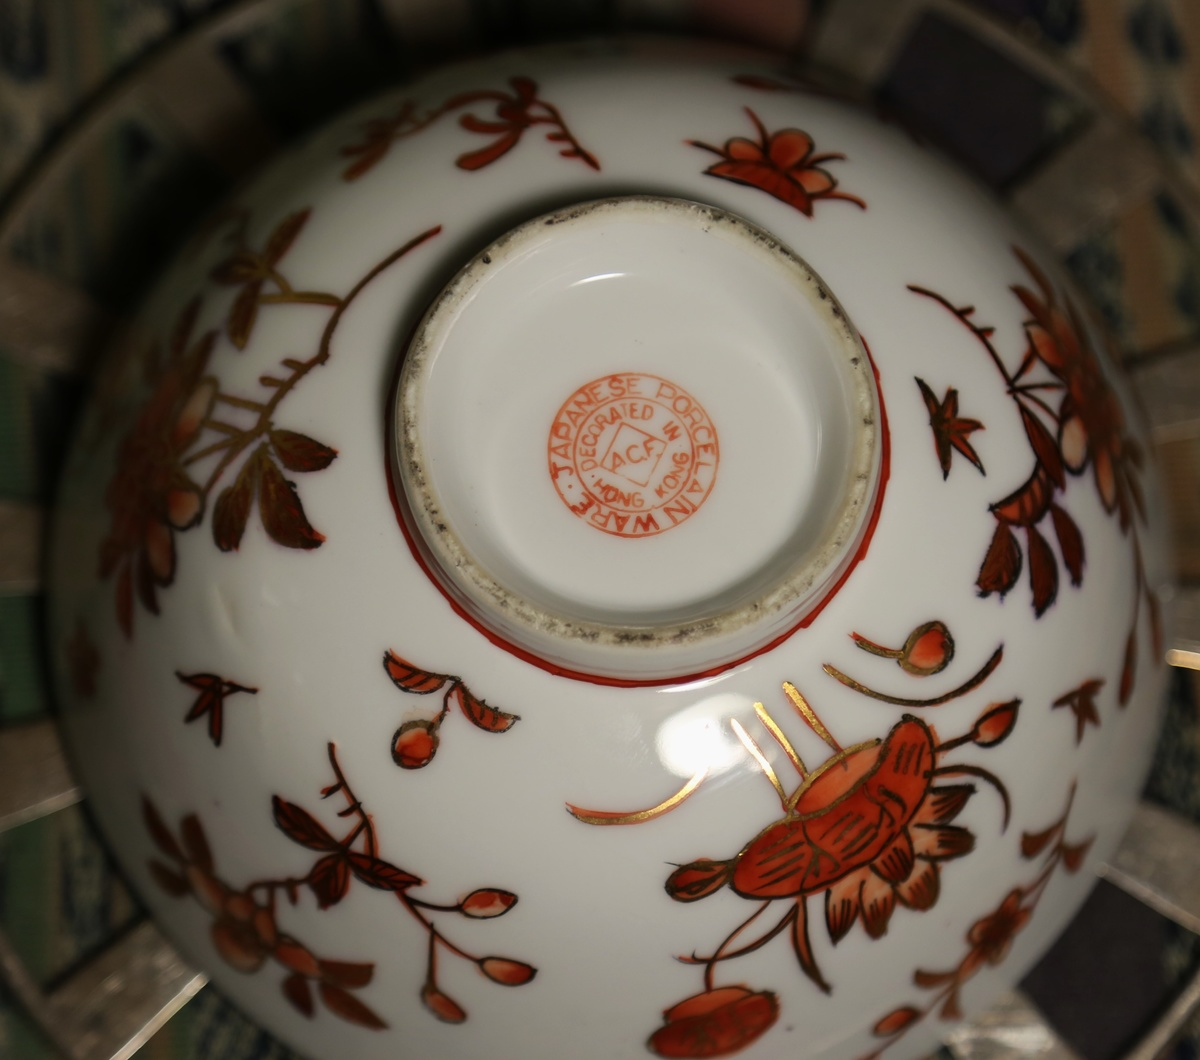 & Japanese Porcelain Ware - Decorated in Hong Kong | Collectors Weekly